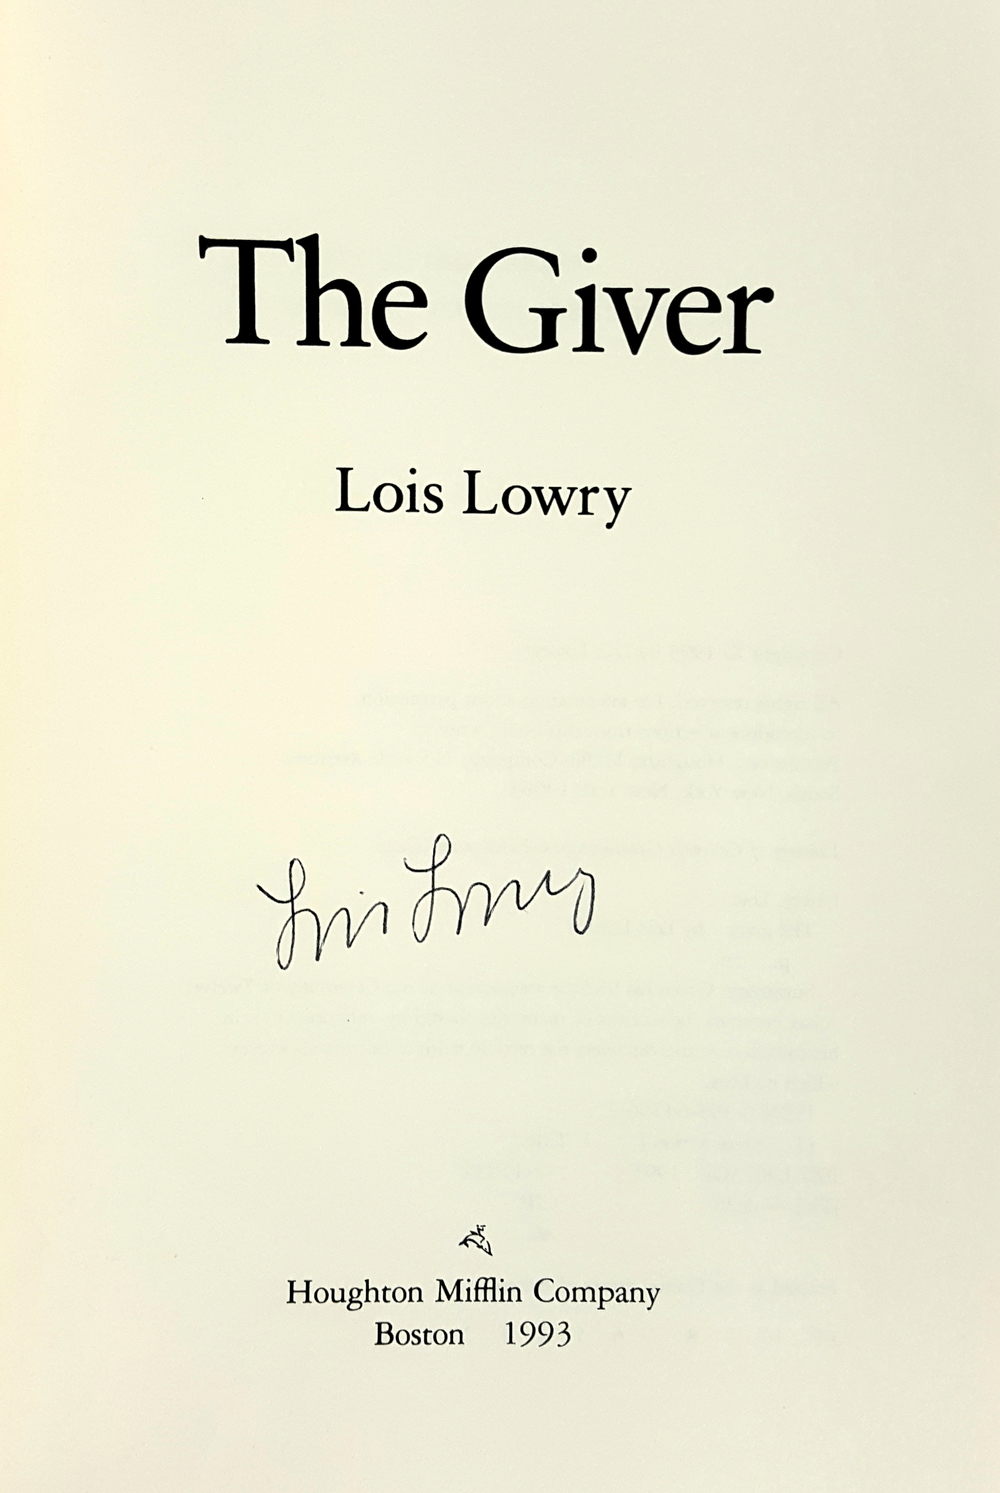 lois lowry essay On biographycom, learn more about award-winning children's author lois lowry, who's written acclaimed novels like 'the giver' and 'number the stars.